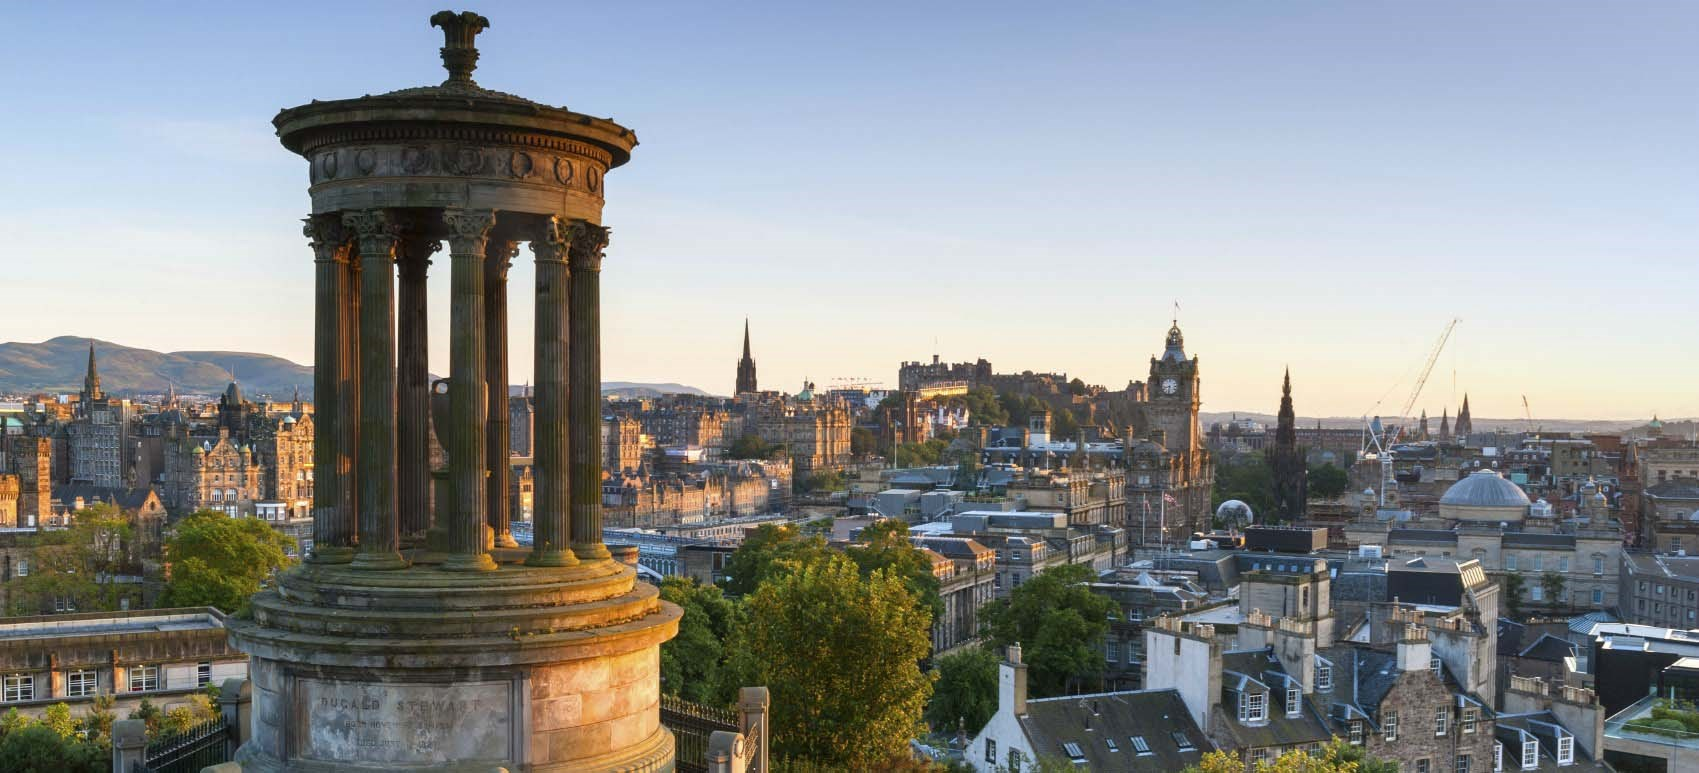 Edinburgh, Scotland: Top 10 Places To Eat And Drink In ...